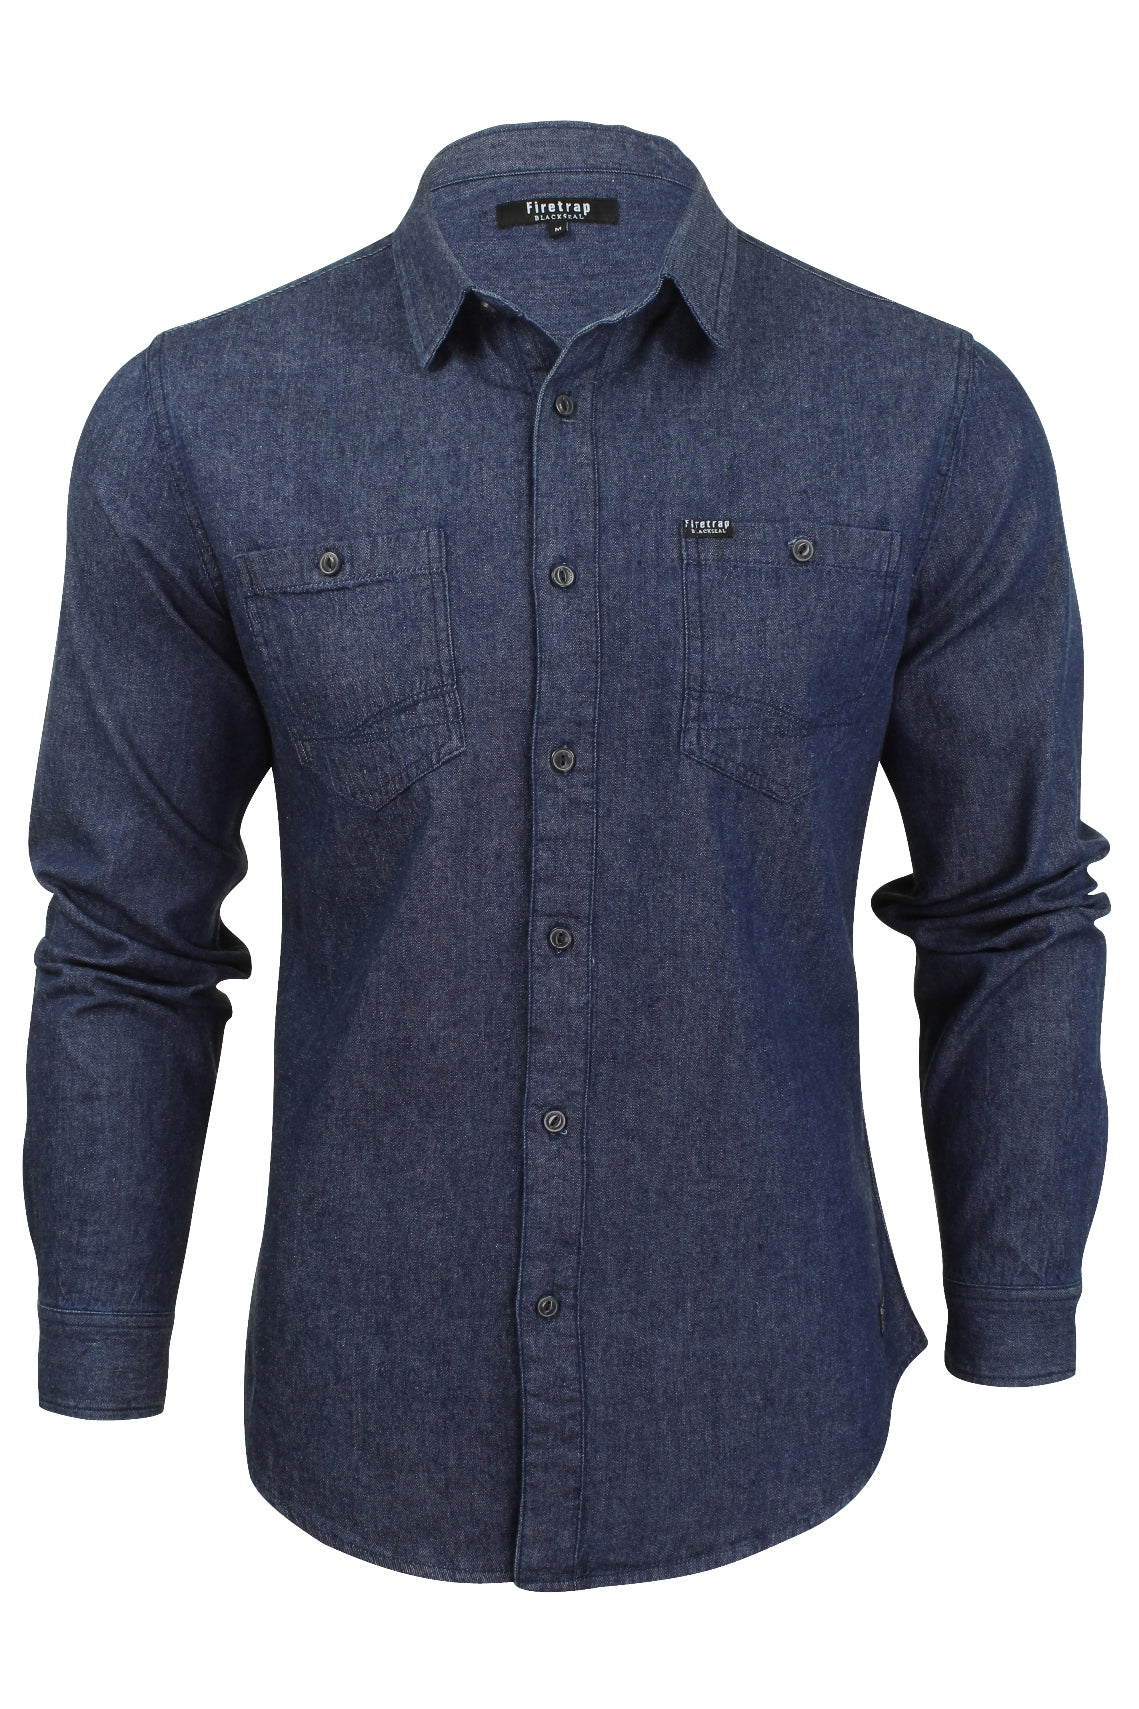 Mens Denim Shirt by Firetrap Western Vintage Wash Long Sleeve-Main Image